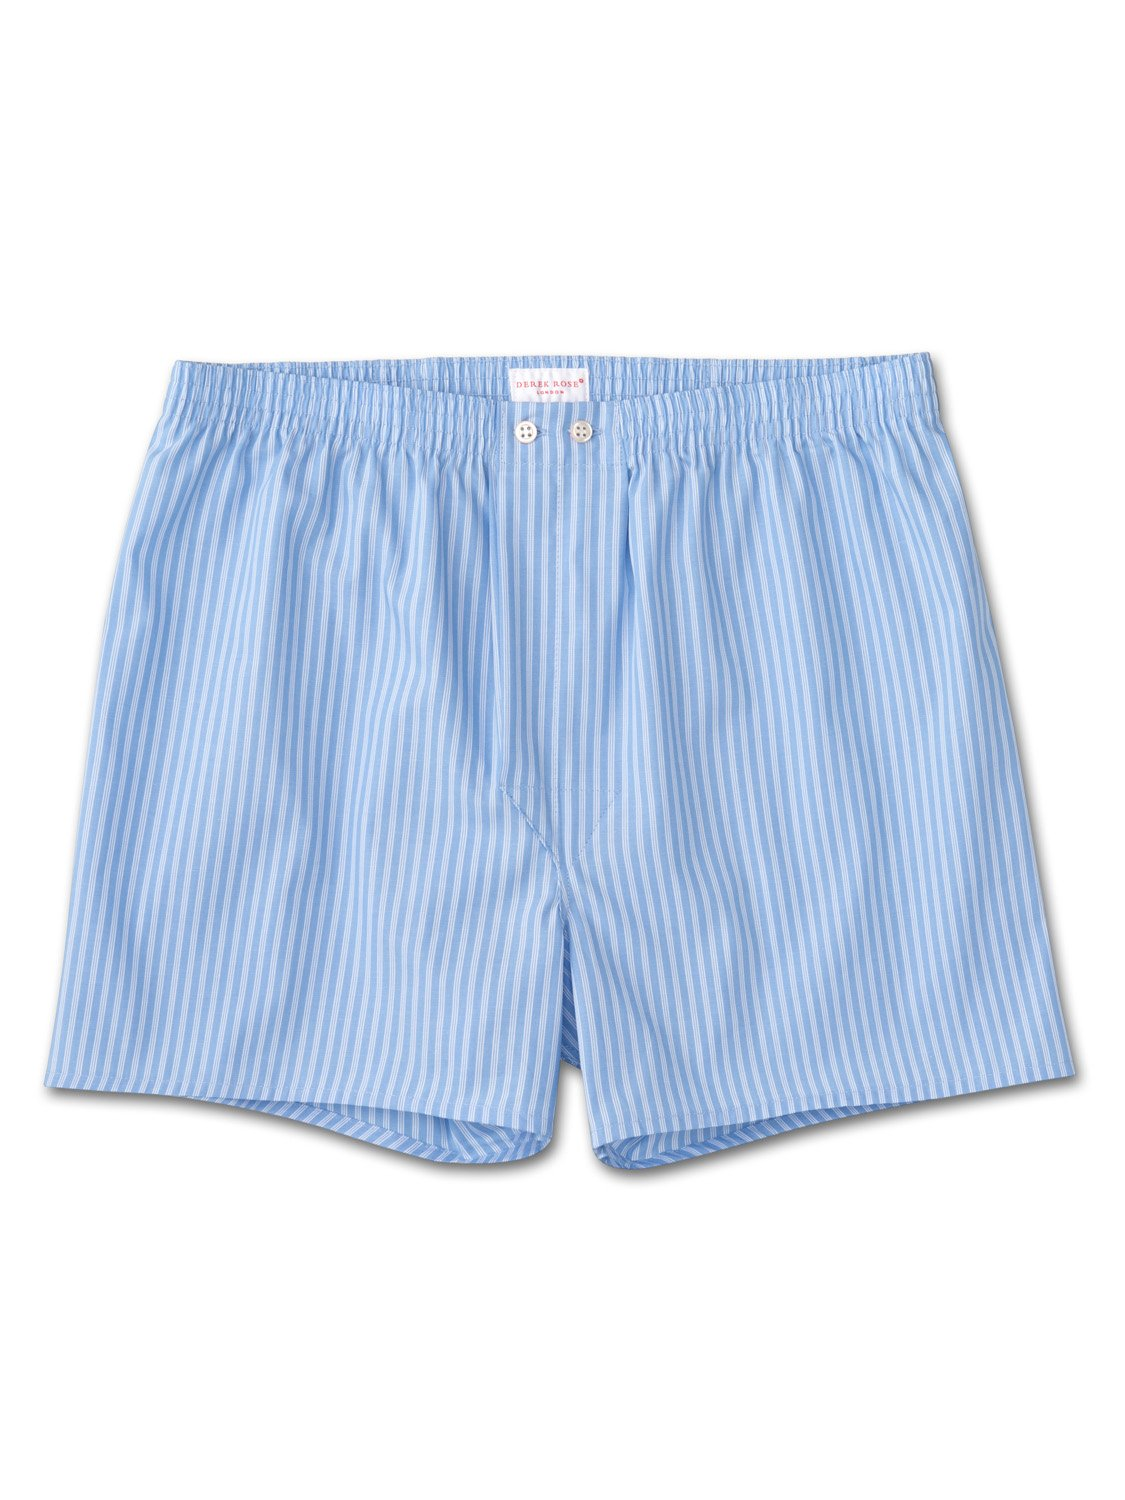 Men's Classic Fit Boxer Shorts Jermyn Pure Cotton Stripe Blue-White